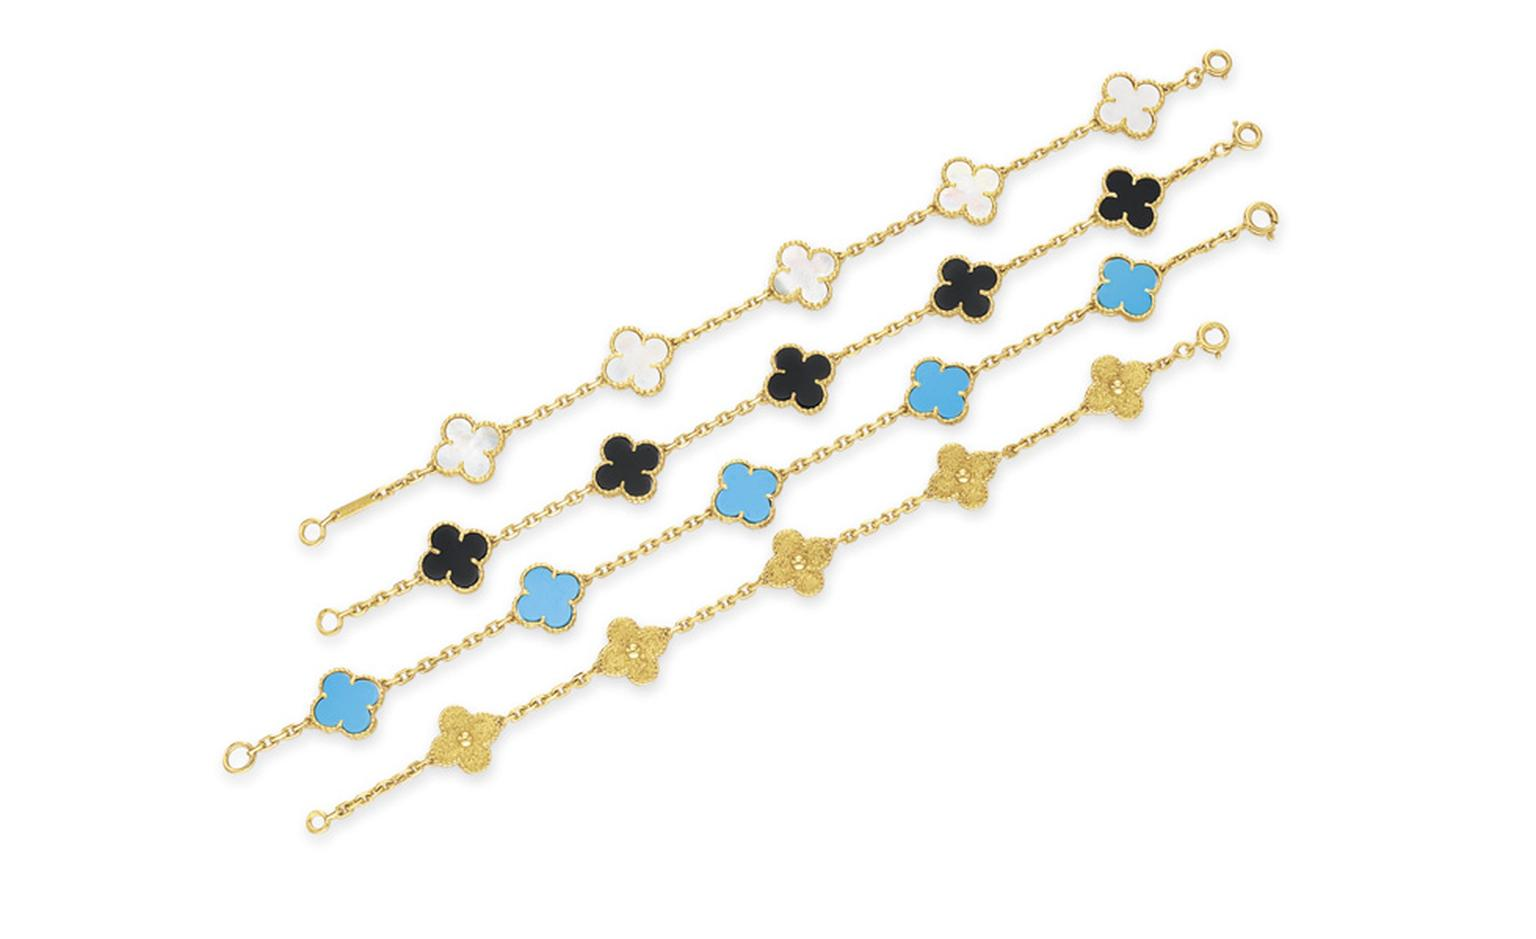 Van Cleef & Arpels. Yellow Gold Alhambra Bracelet, Turquoise and Yellow Gold Alhambra Bracelet, Mother of Pearl and Yellow Gold Alhambra Bracelet, Onyx and Yellow Gold Alhambra Bracelet. © Christie's Images 2011. POA.